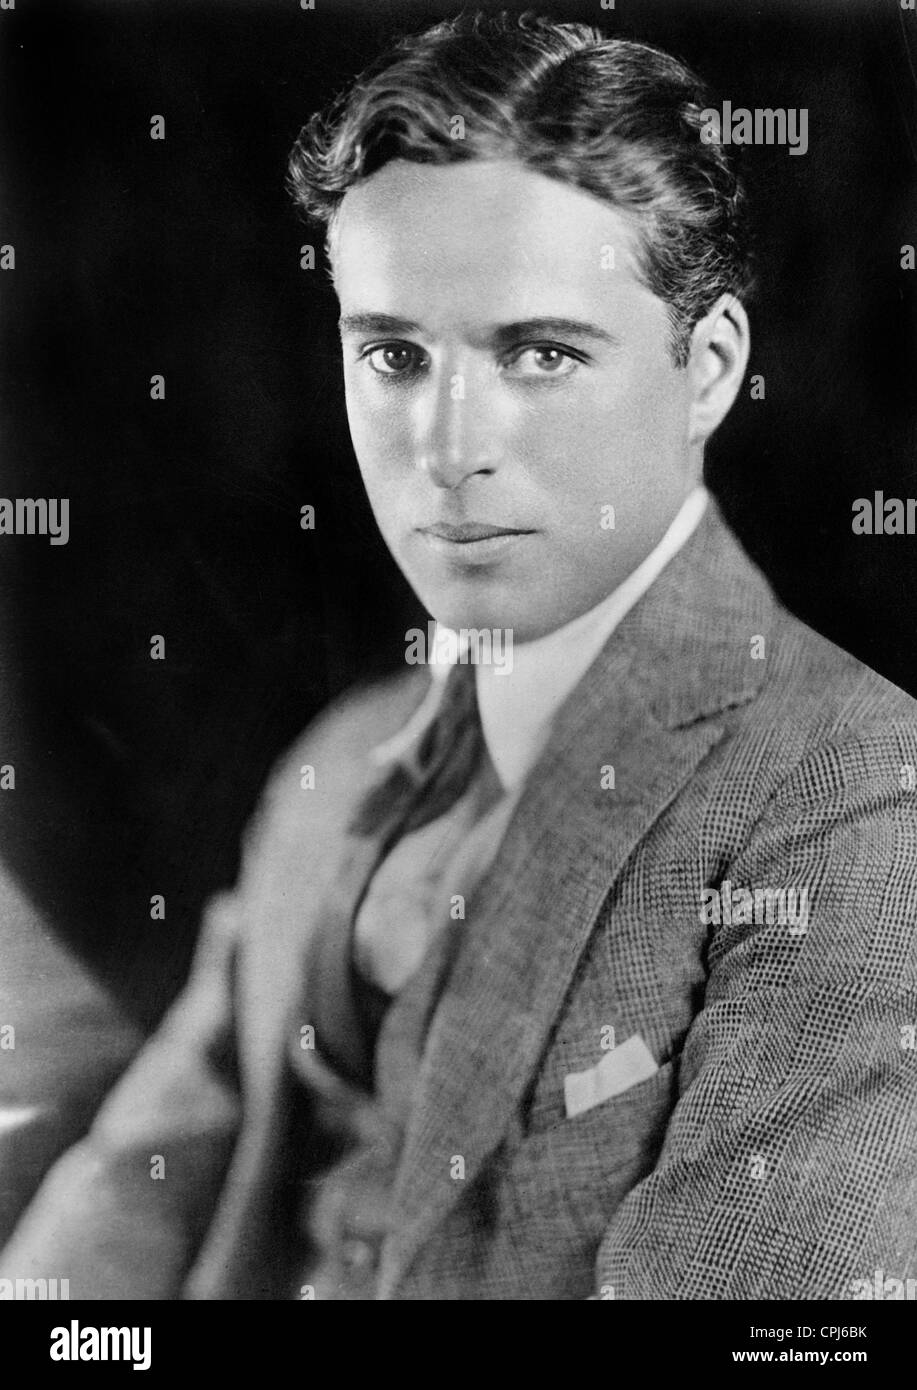 British actor and director Charles Chaplin (1889-1977). - Stock Image